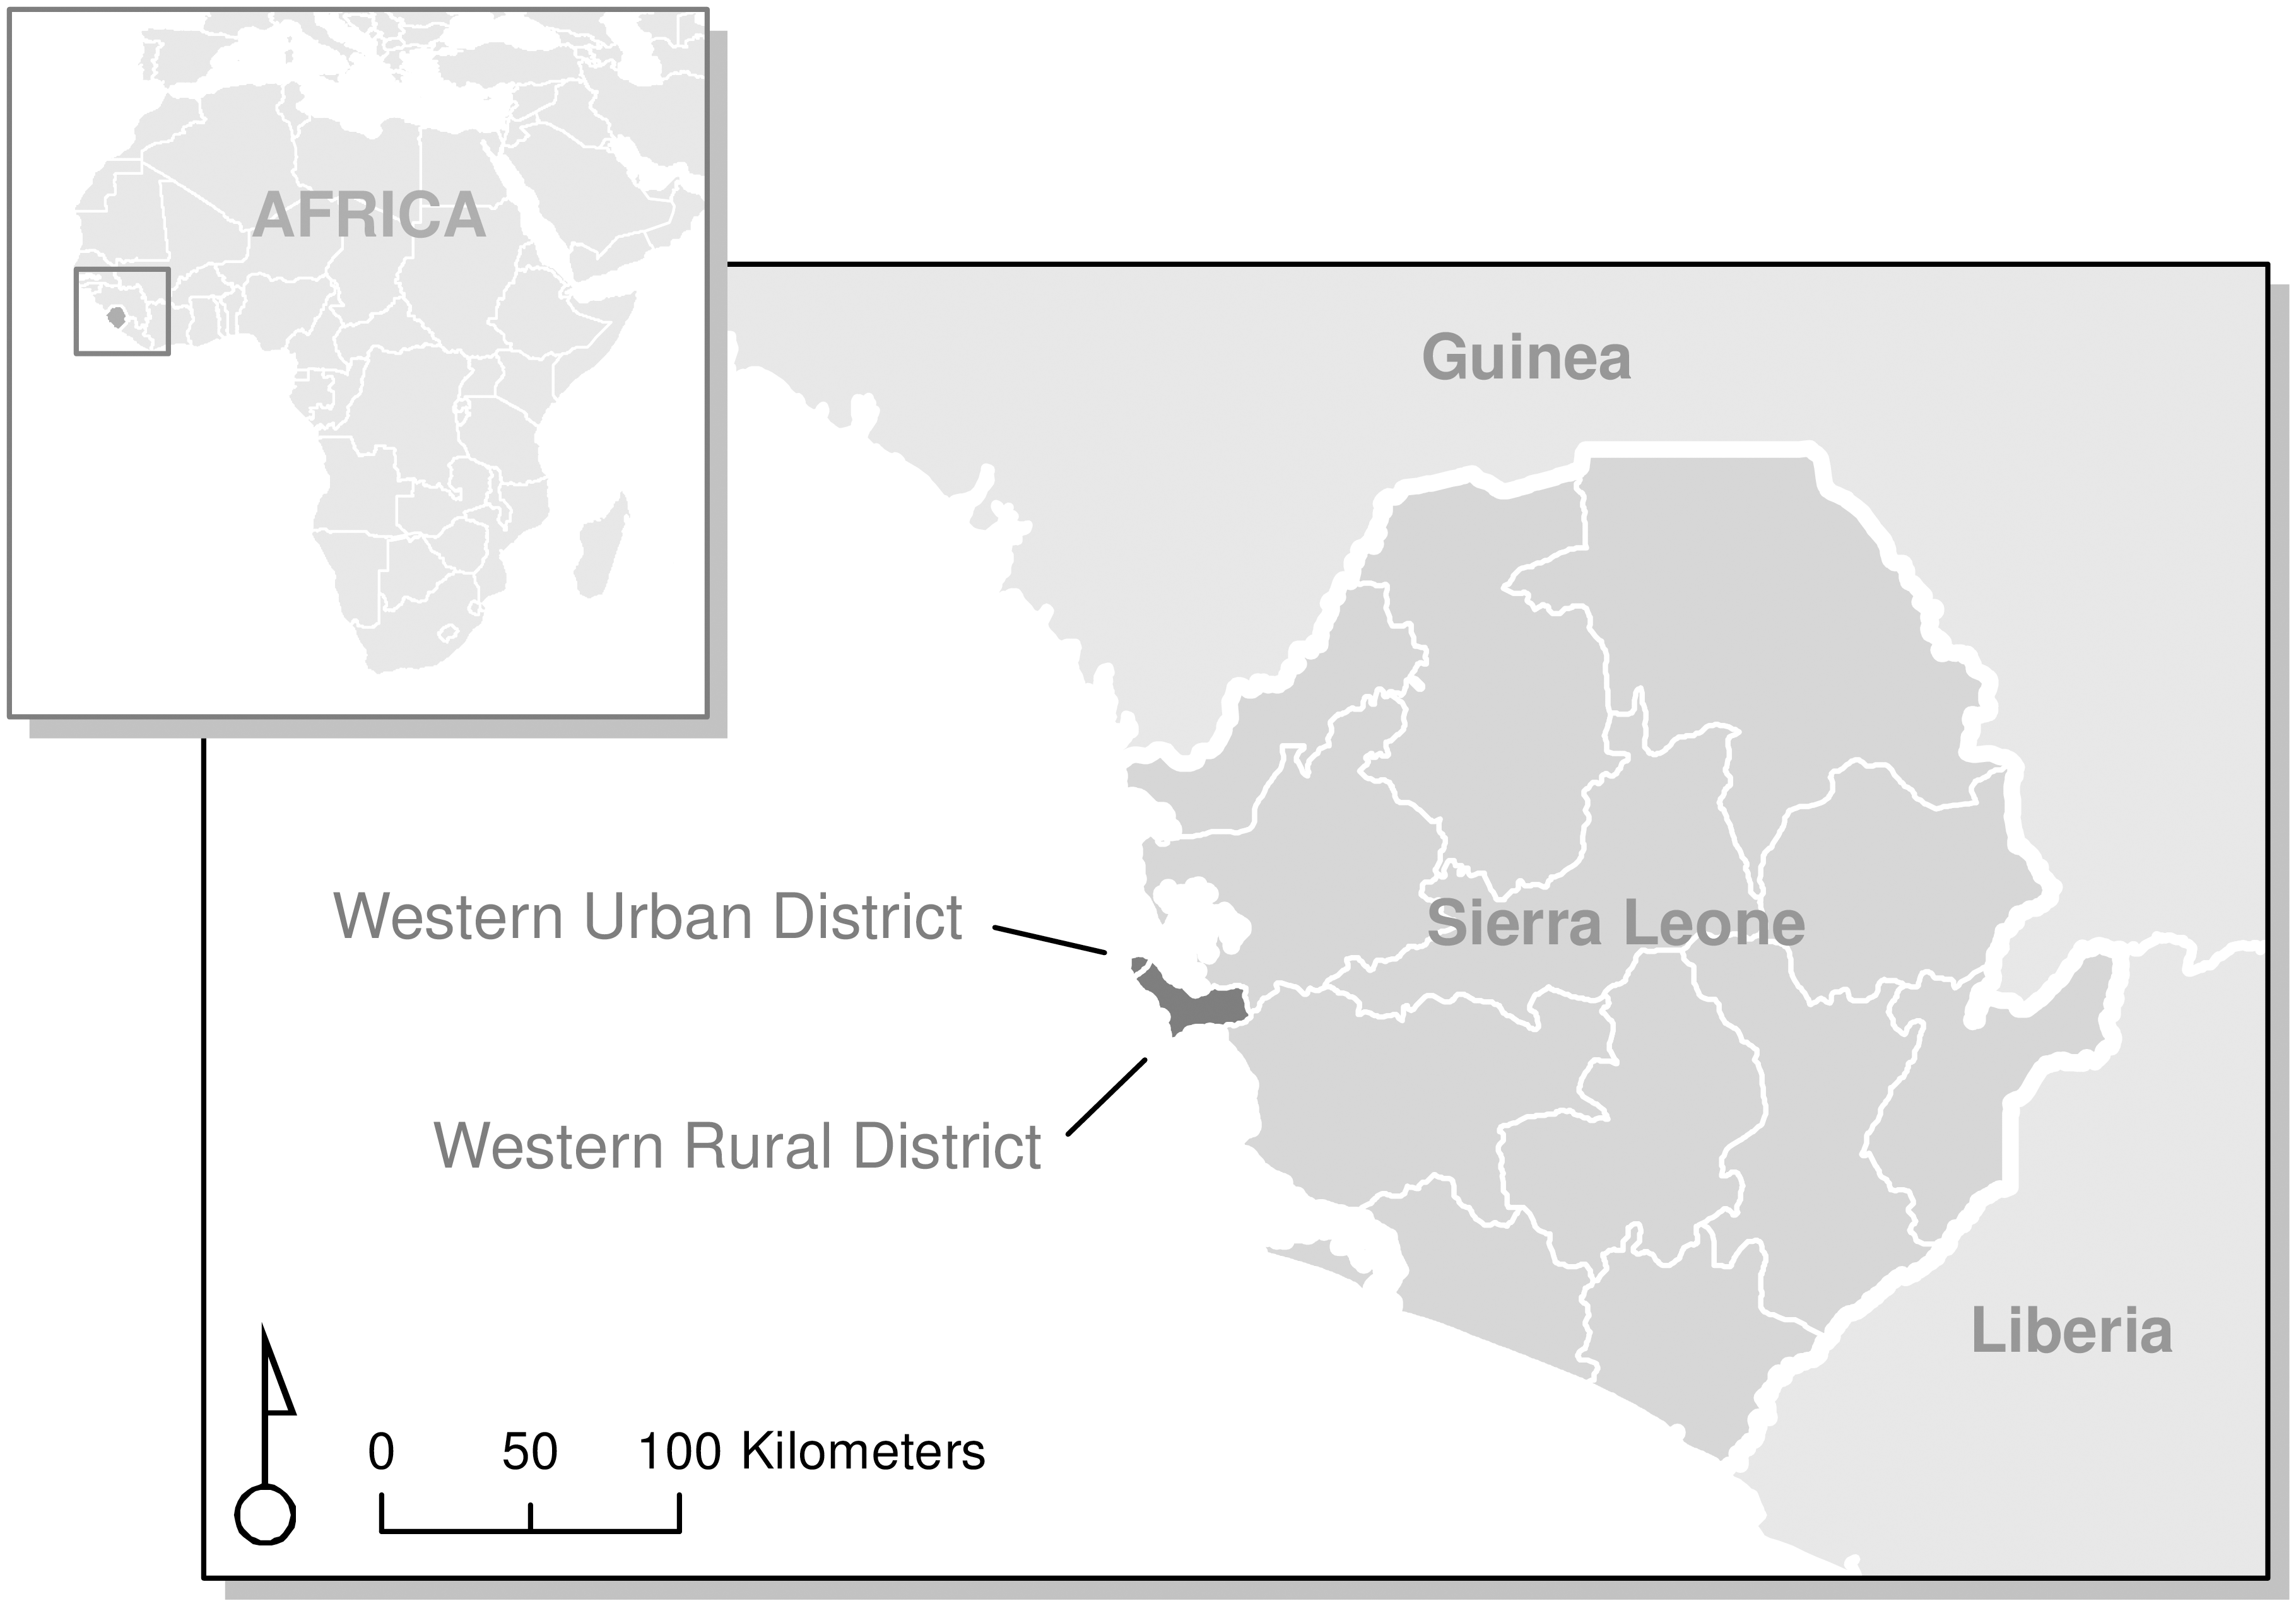 Sampled districts (Western Urban and Western Rural) in Sierra Leone.